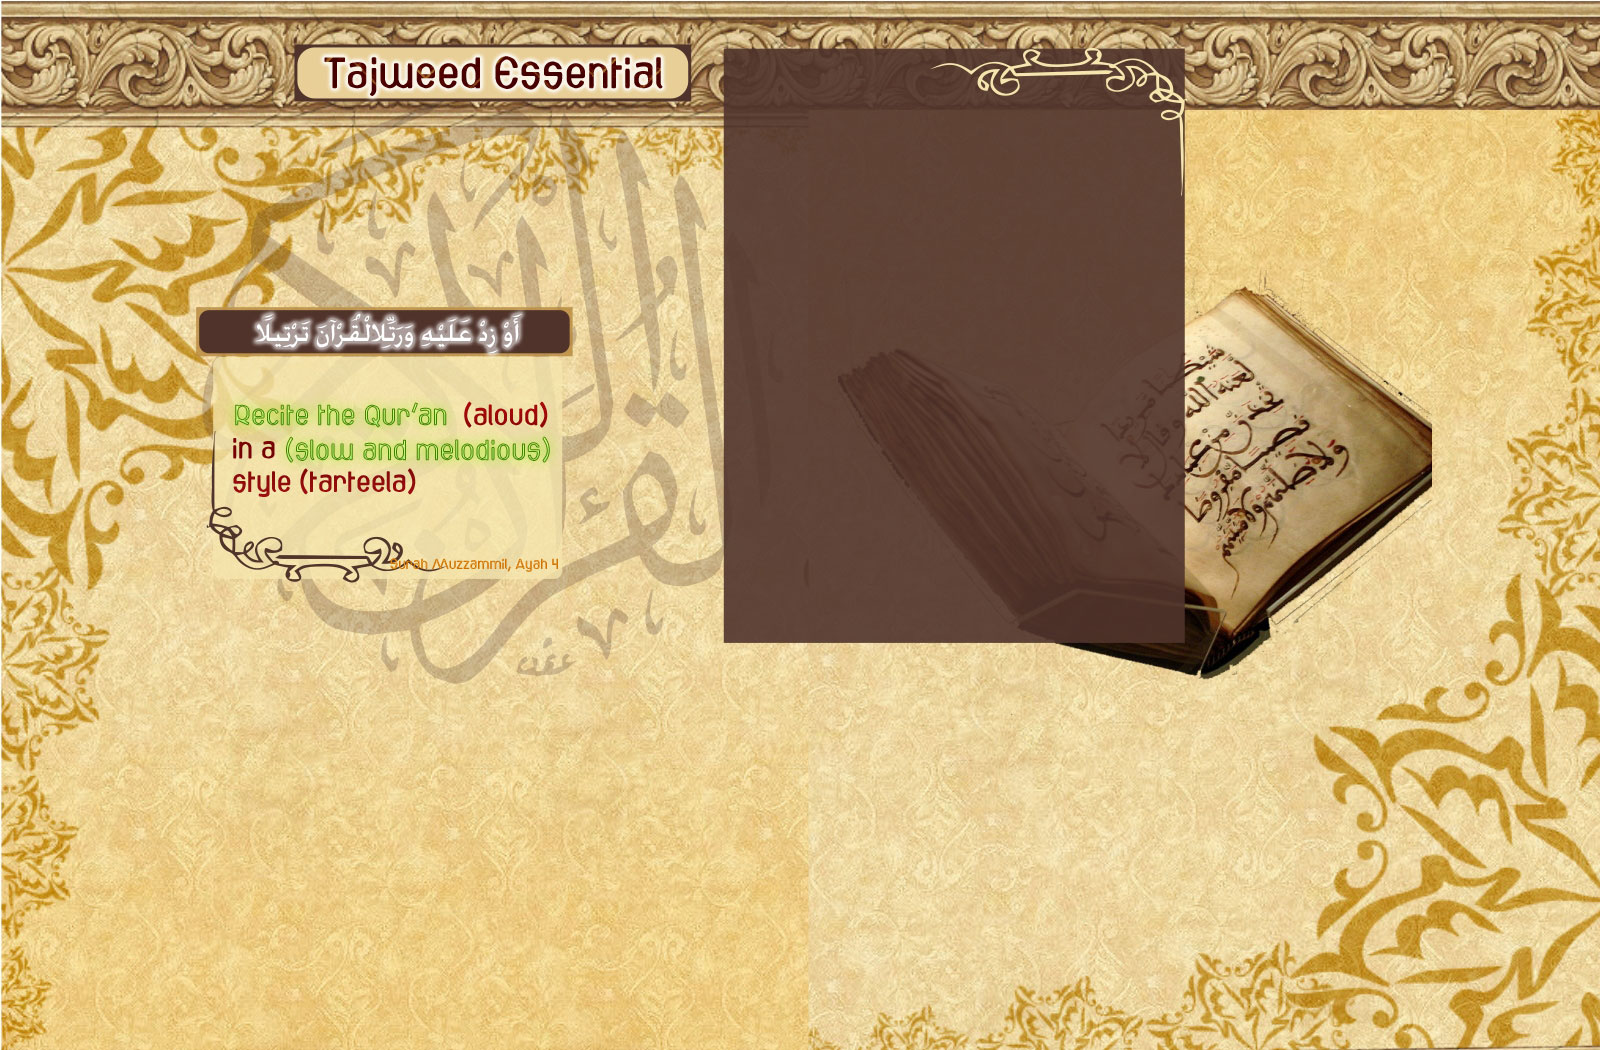 Tajweed Essential Course